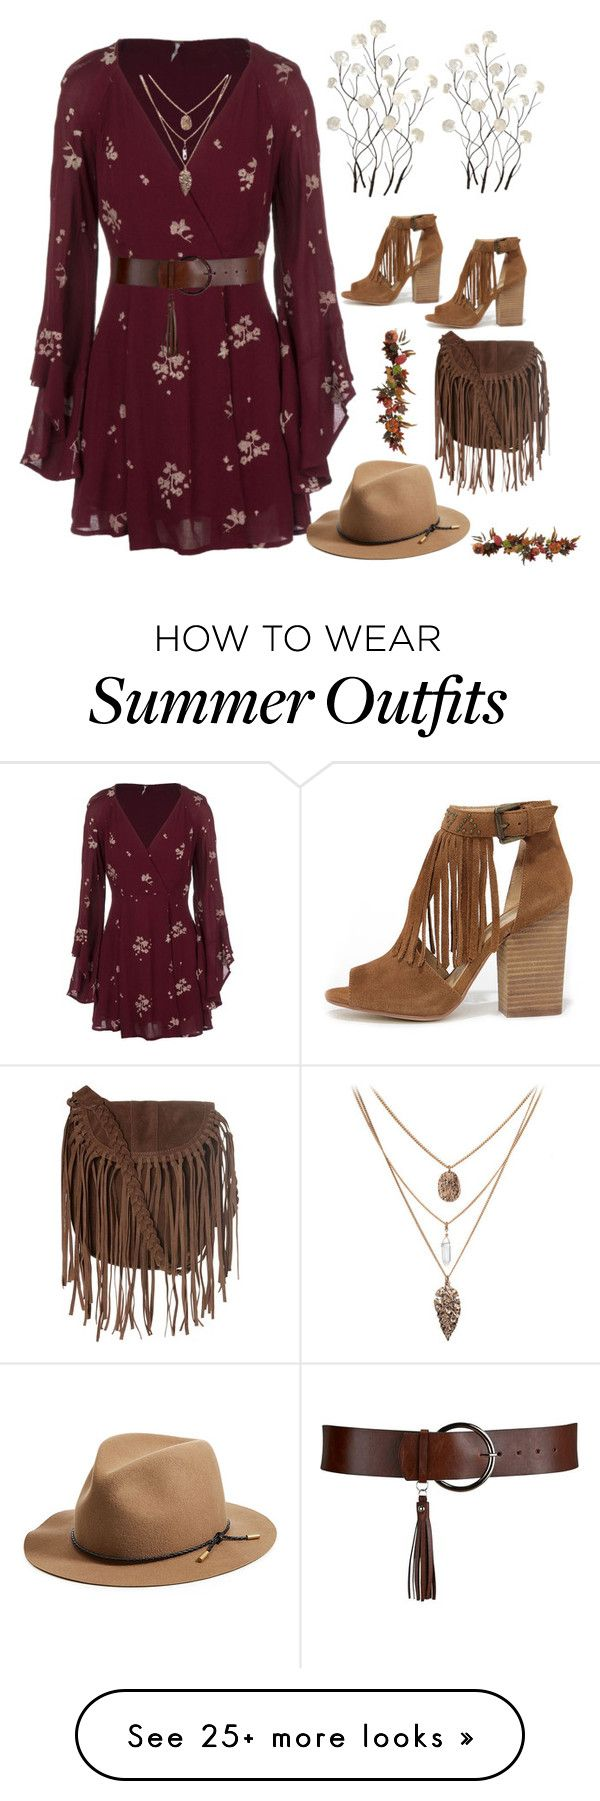 """Day Look 170 Coachella California Sun Summer Playsuit Bordeaux Outfit"" by fashion-by-katrine on Polyvore featuring Chinese Laundry, Free People, Glamorous, rag & bone, Universal Lighting and Decor and Nearly Natural"